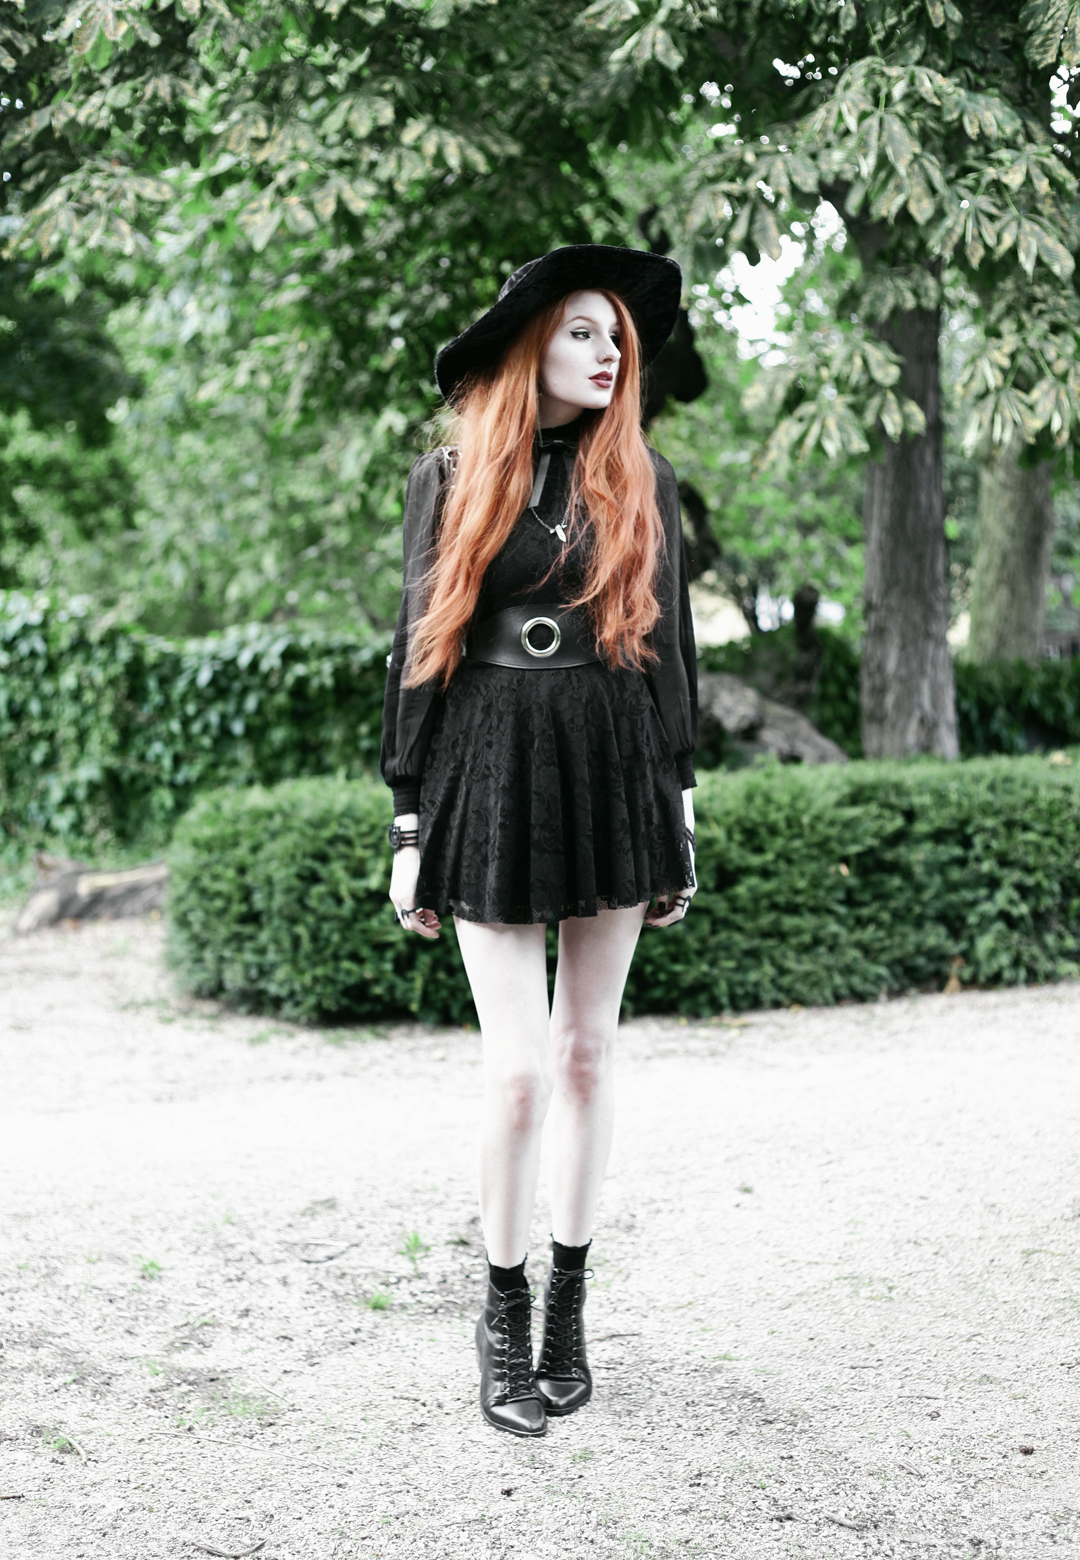 Olivia Emily wears Asos Sheer Shirt, Black Milk Black Lace Skater Dress, Killstar Velvet Witch Brim Hat, Valfre Bowie Choker, Zana Bayne Cincher Waist Belt, and Asos Ariana Lace Up Boots